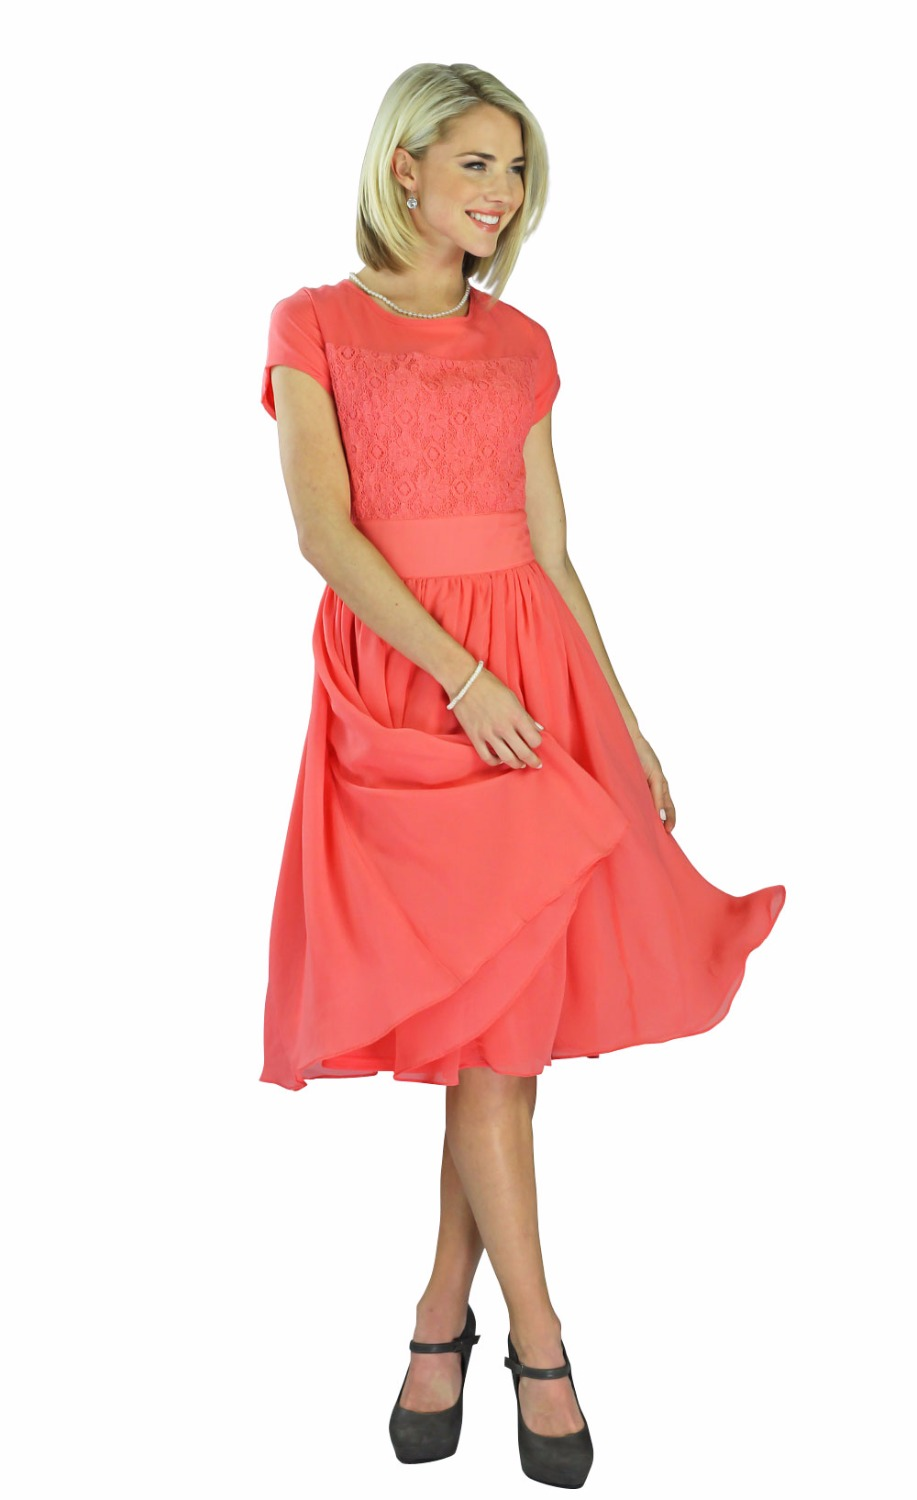 Coral Dresses With Sleeves Photo Album - The Fashions Of Paradise